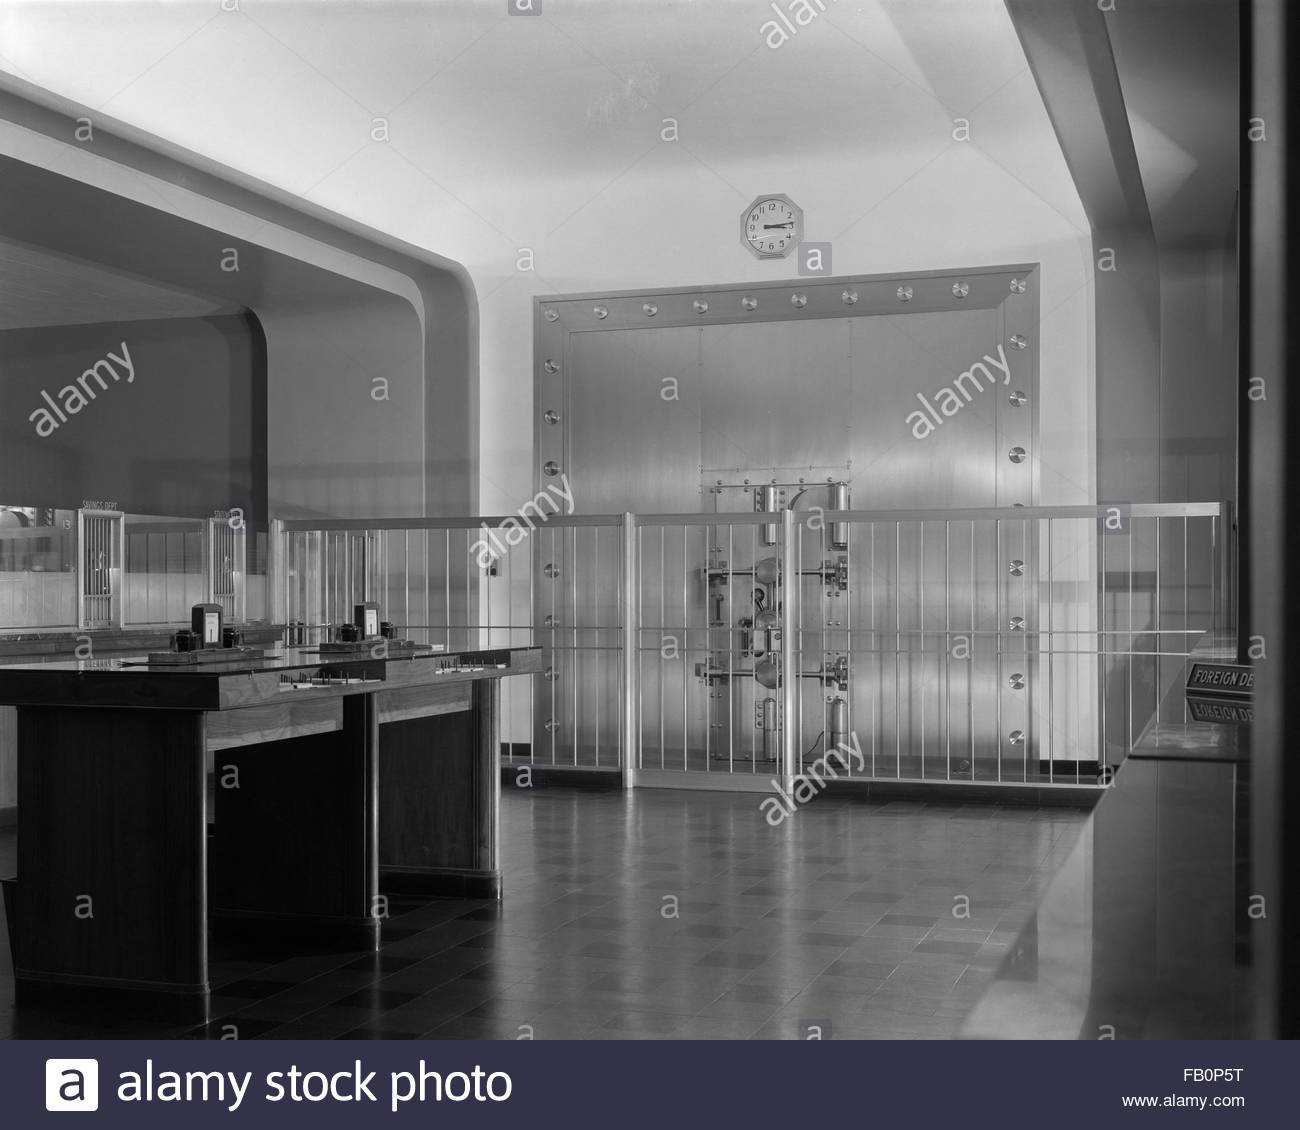 Amalgamated Trust and Savings Bank in Chicago (Ill.), 1935 May 1. Interior, bank lobby with a view of the vault. - Stock Image